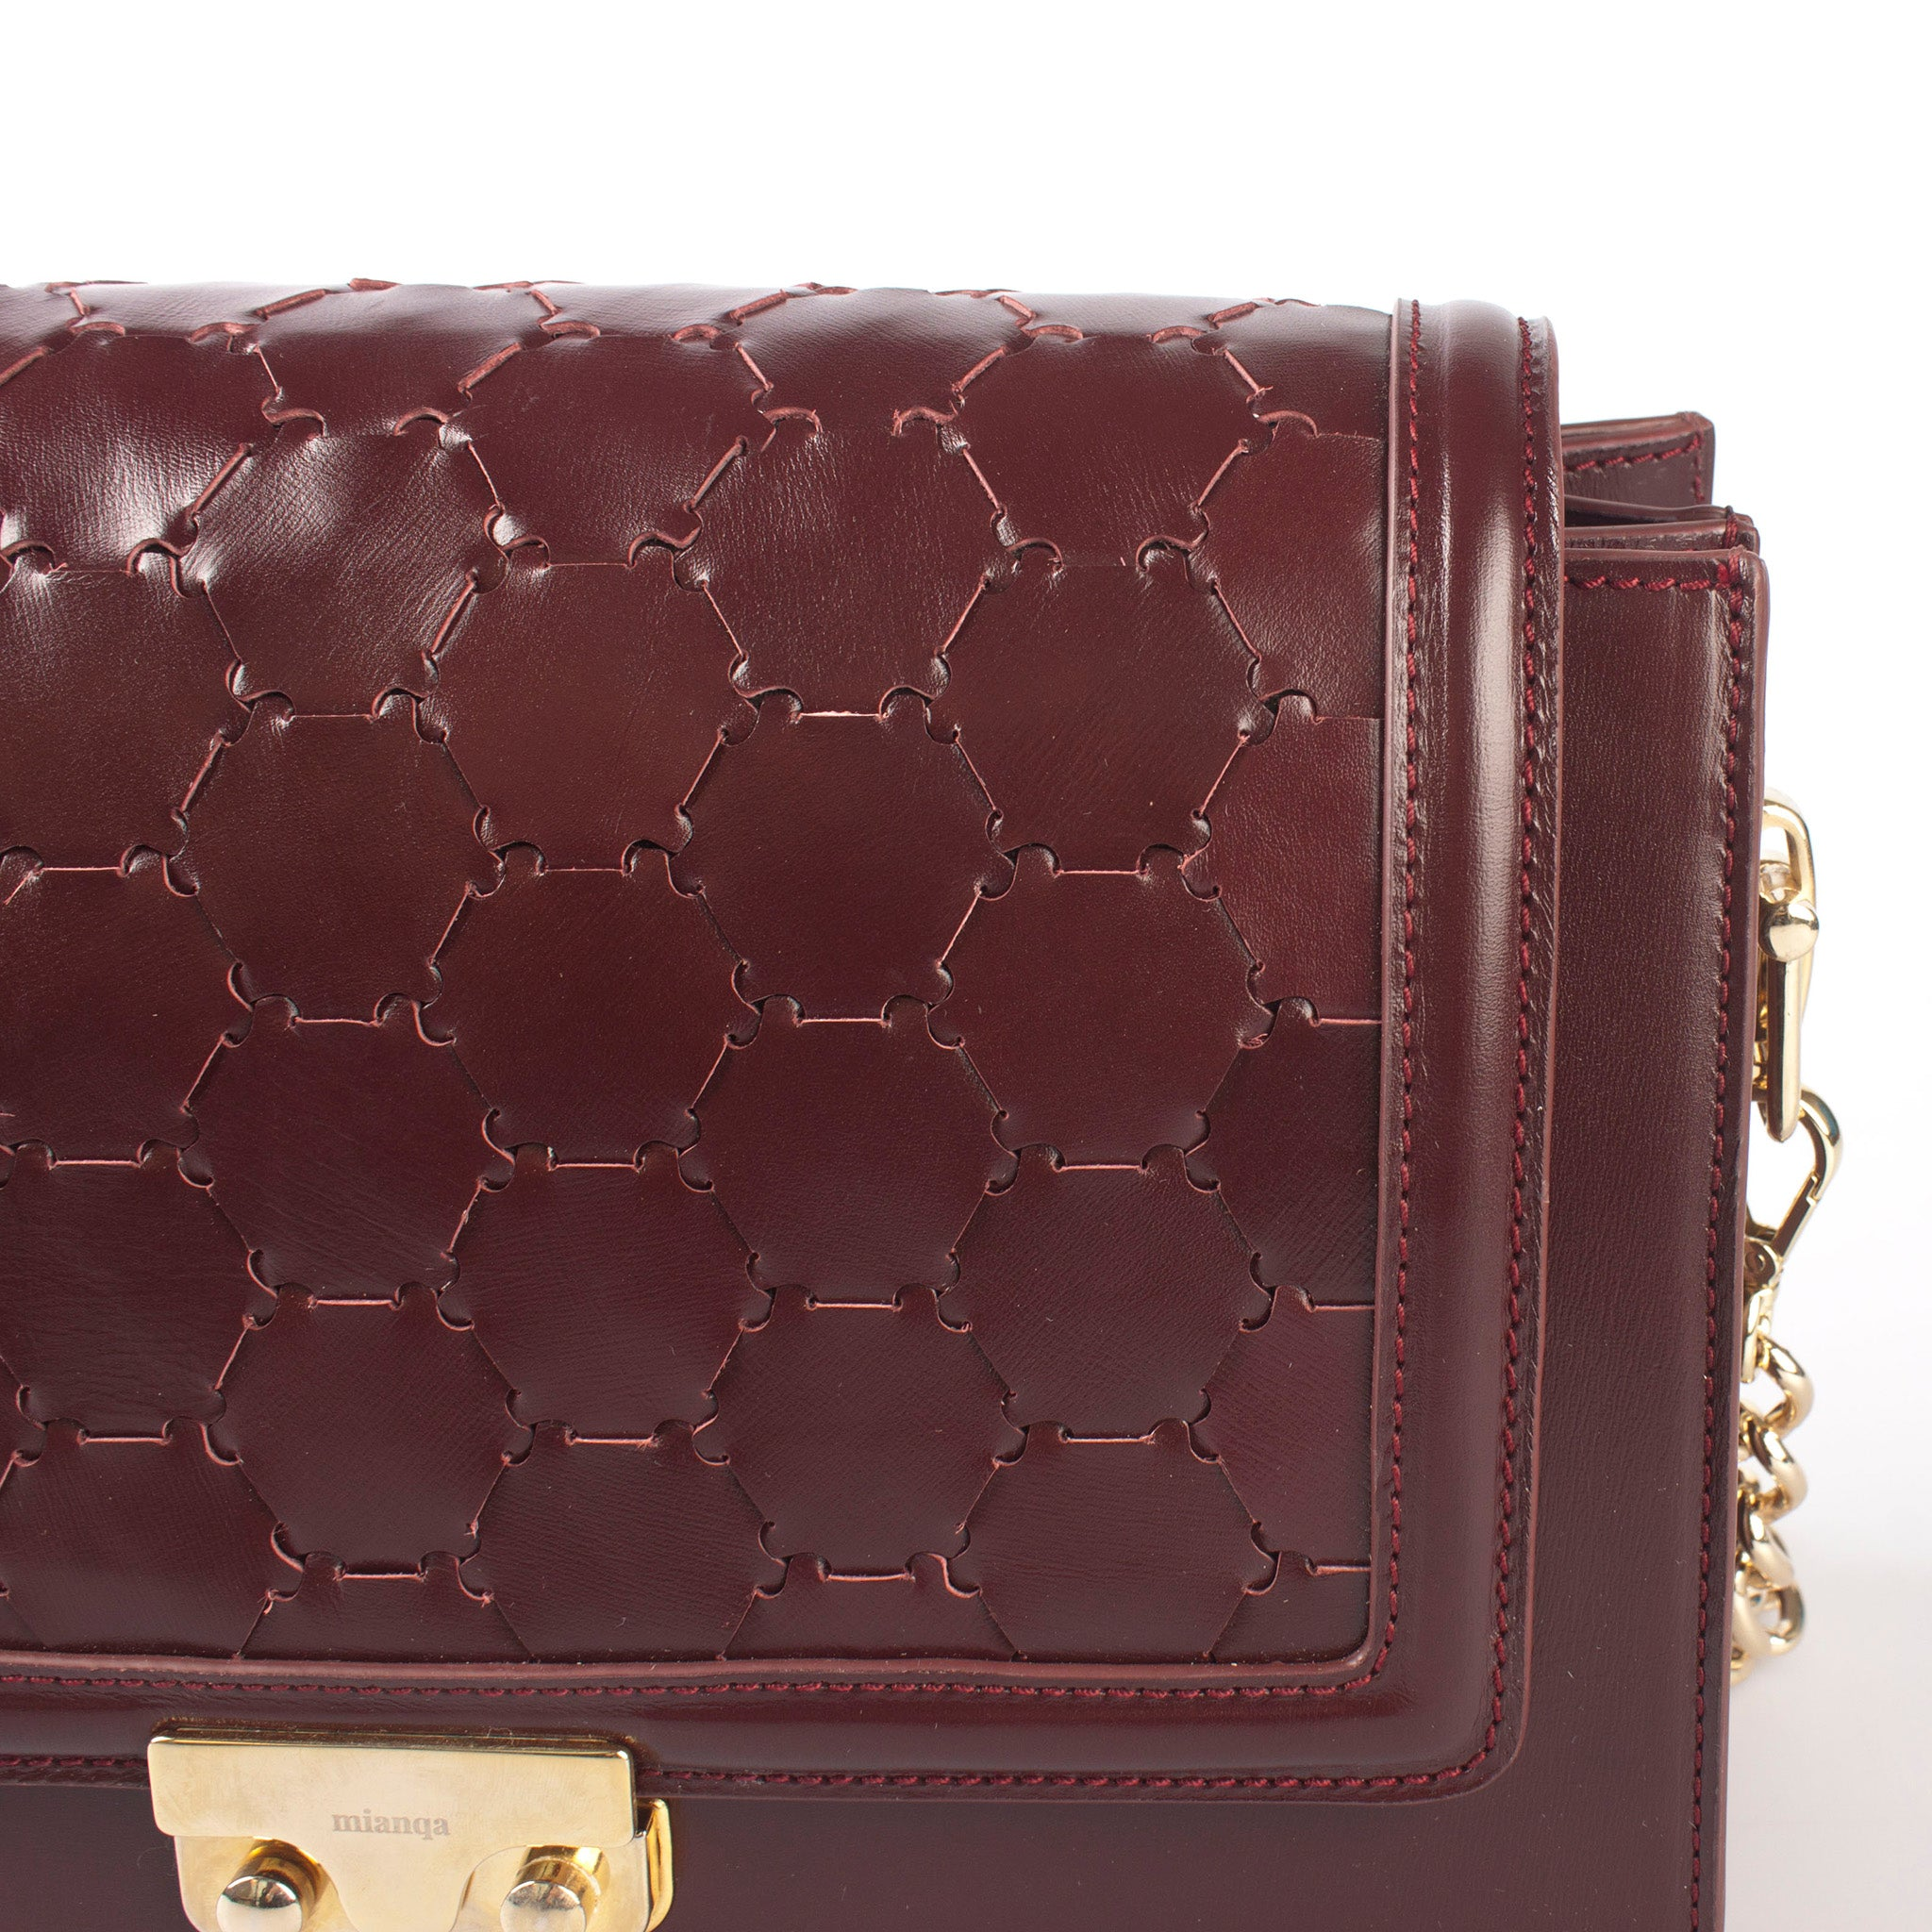 bordeaux luxury leather crossbody bag with handwoven flap and chain handle flap detail